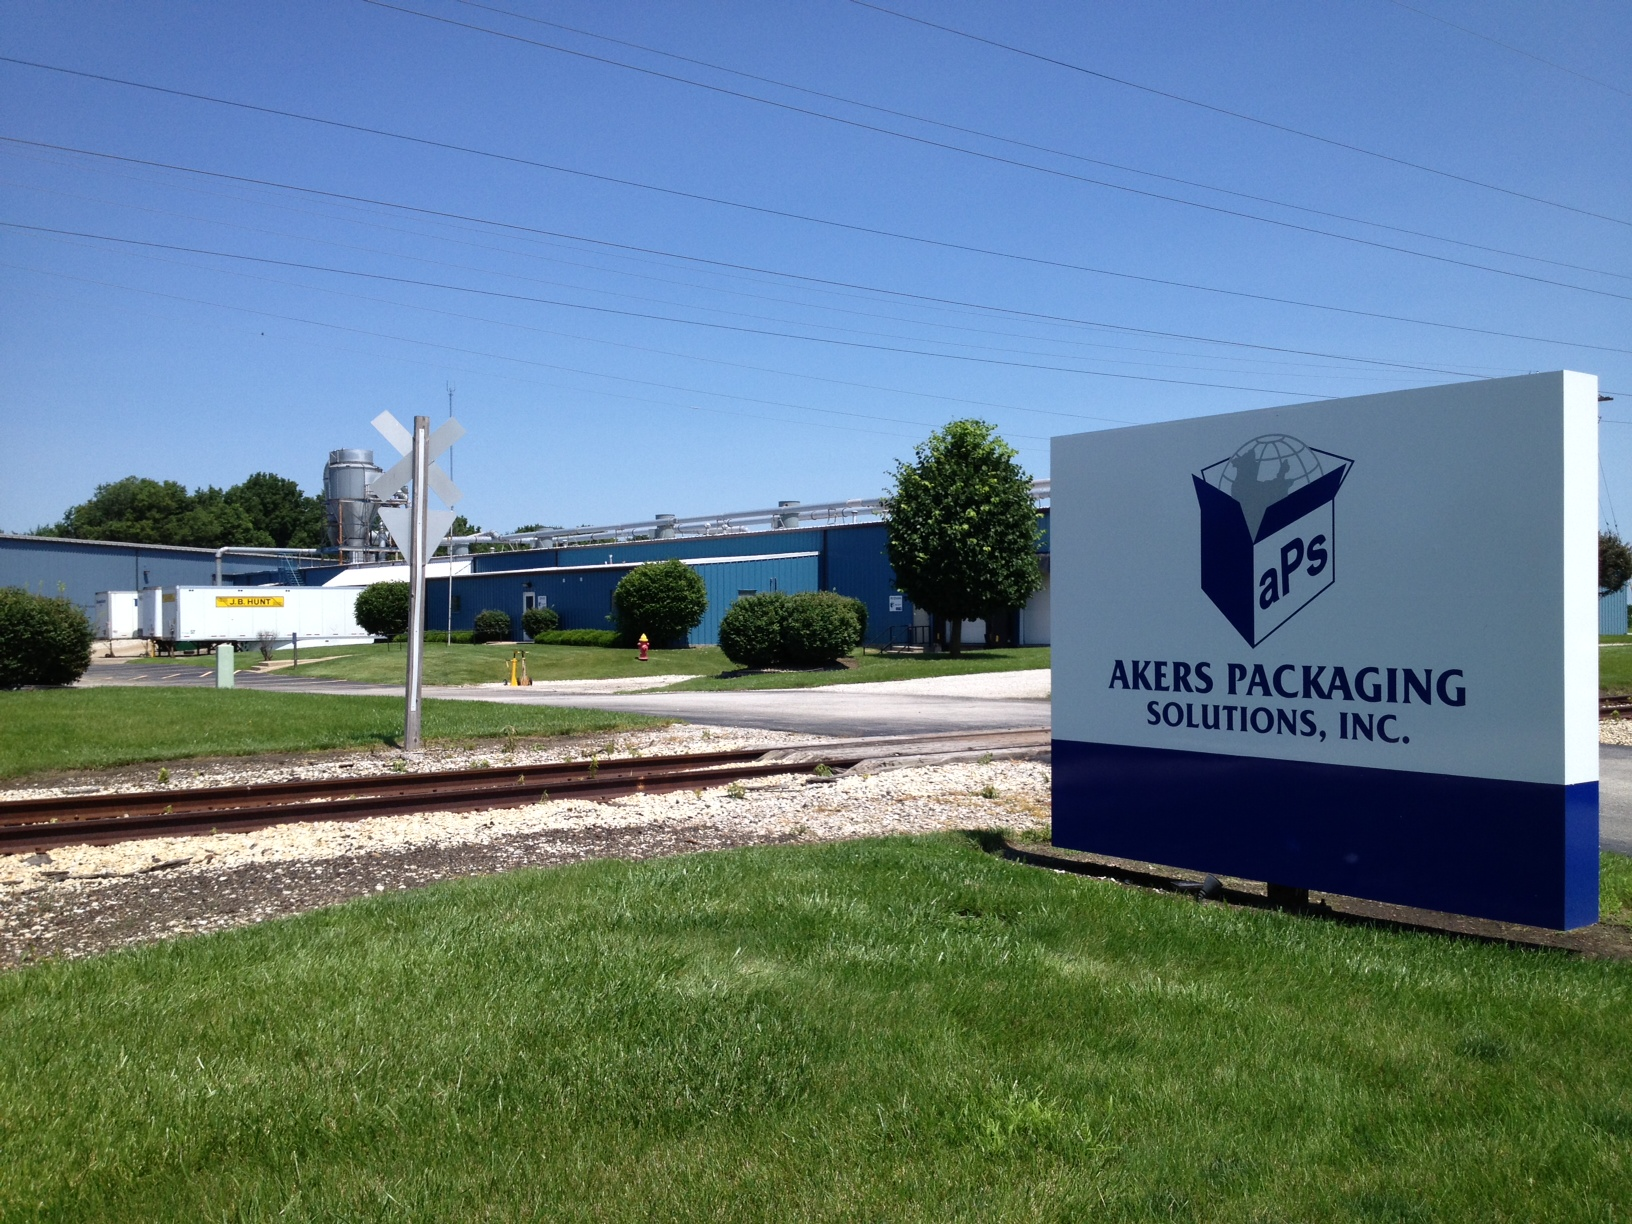 Akers Packaging Solutions, Inc.